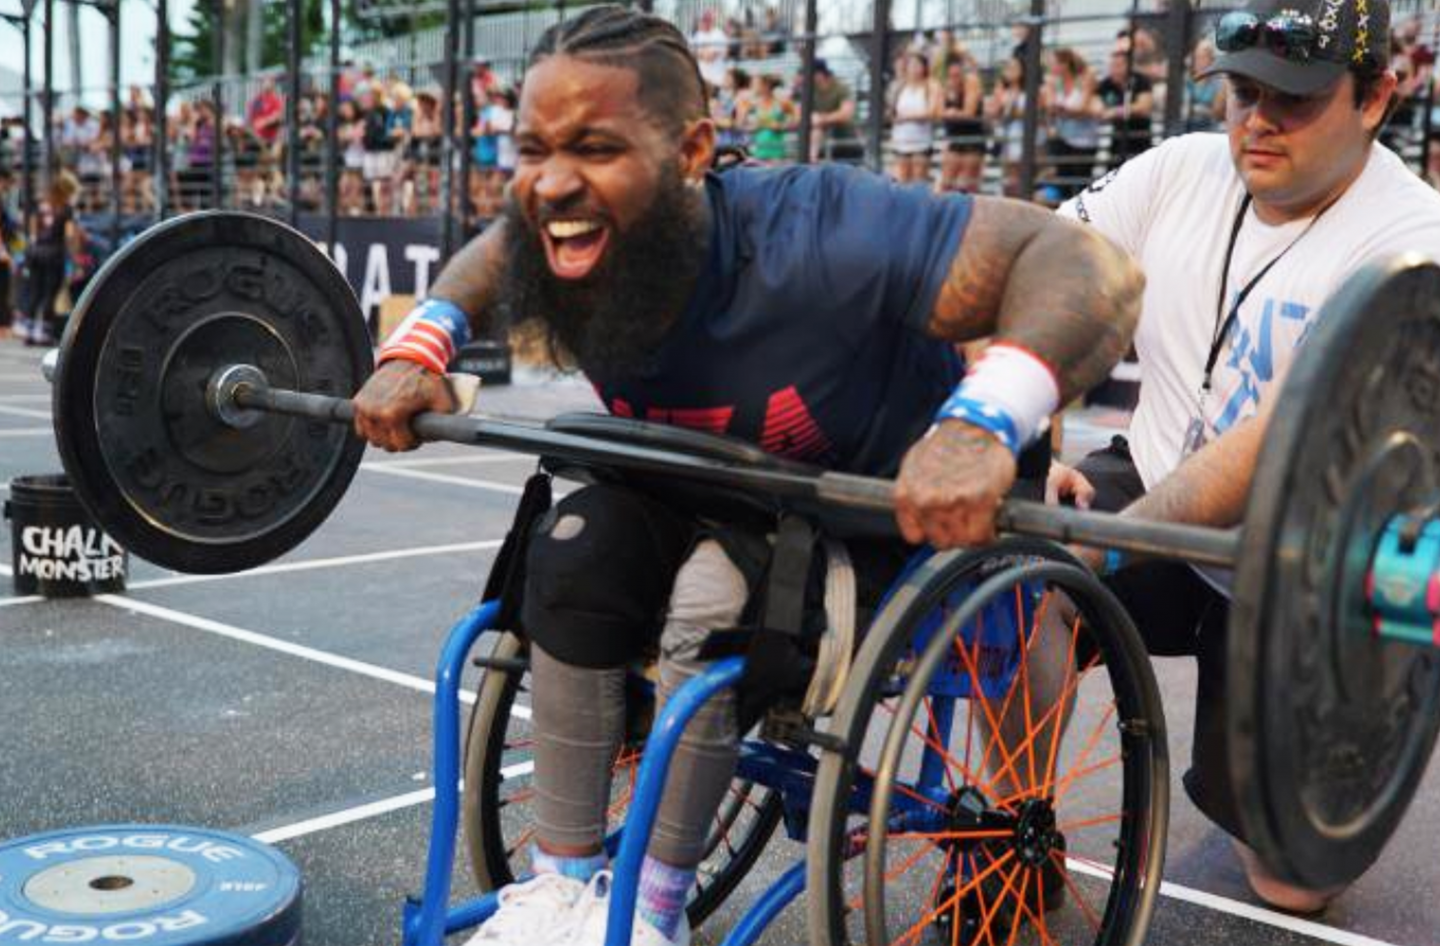 Wesley Hamilton lifts weights in his wheelchair at a competition.